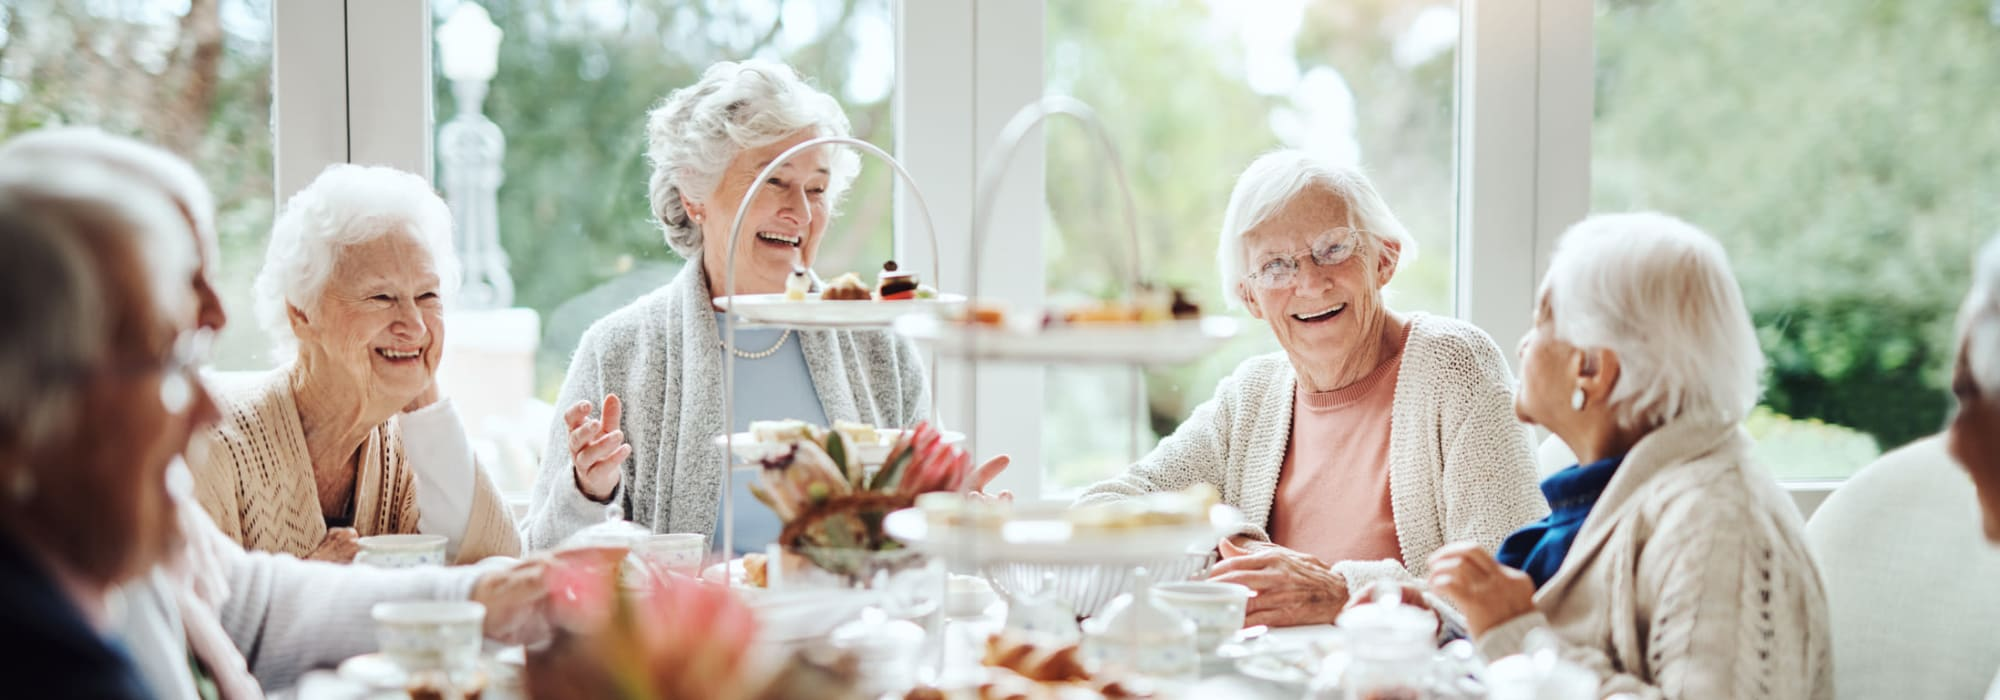 Lifestyle Options at Avenir Senior Living in Scottsdale, Arizona.